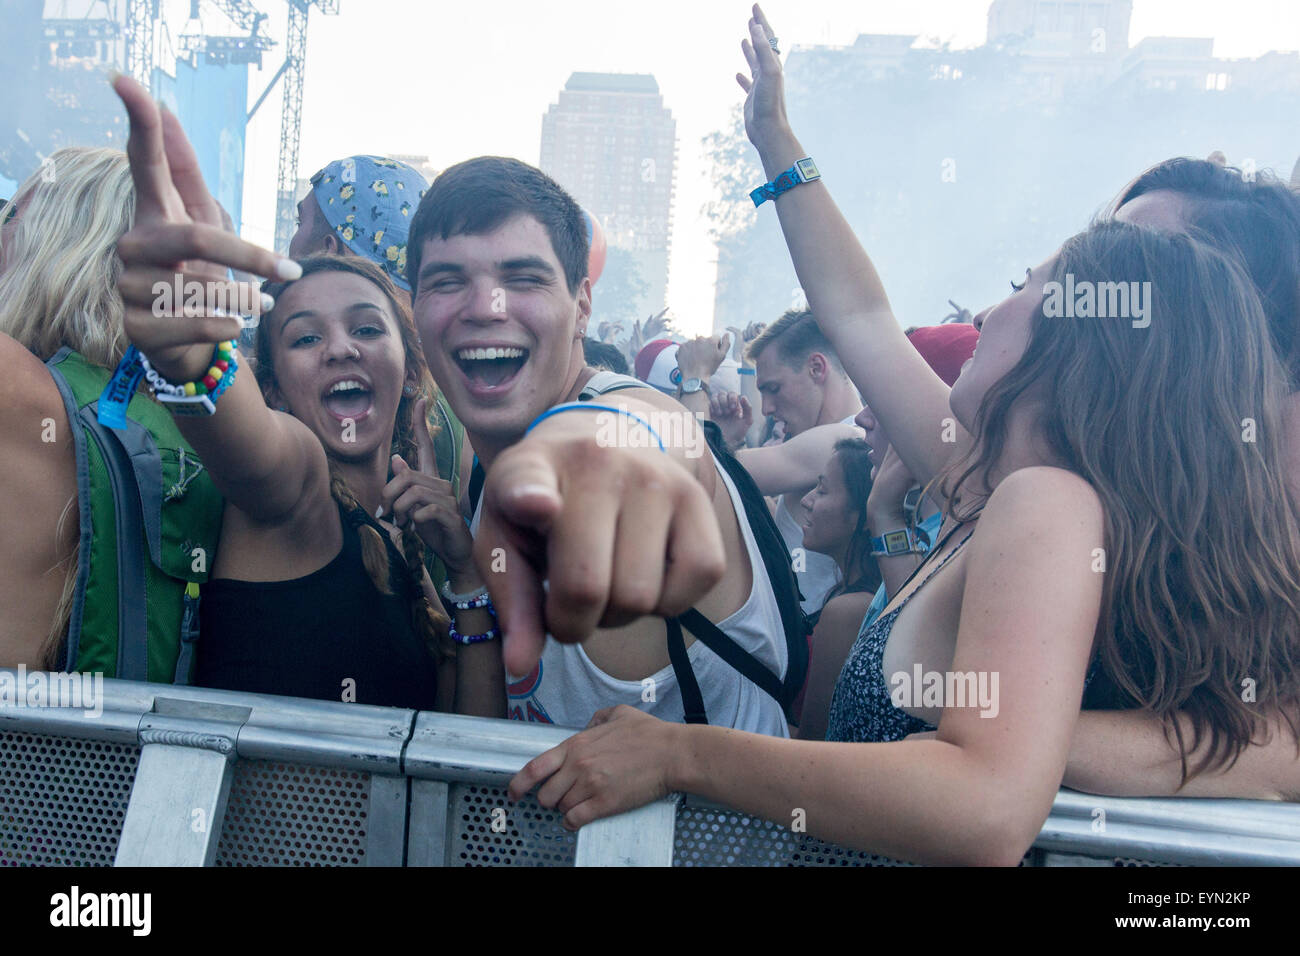 Chicago, Illinois, USA. 31st July, 2015. Fans enjoy an EDM set by DJ Dillon Francis in Grant Park at the Lollapalooza - Stock Image